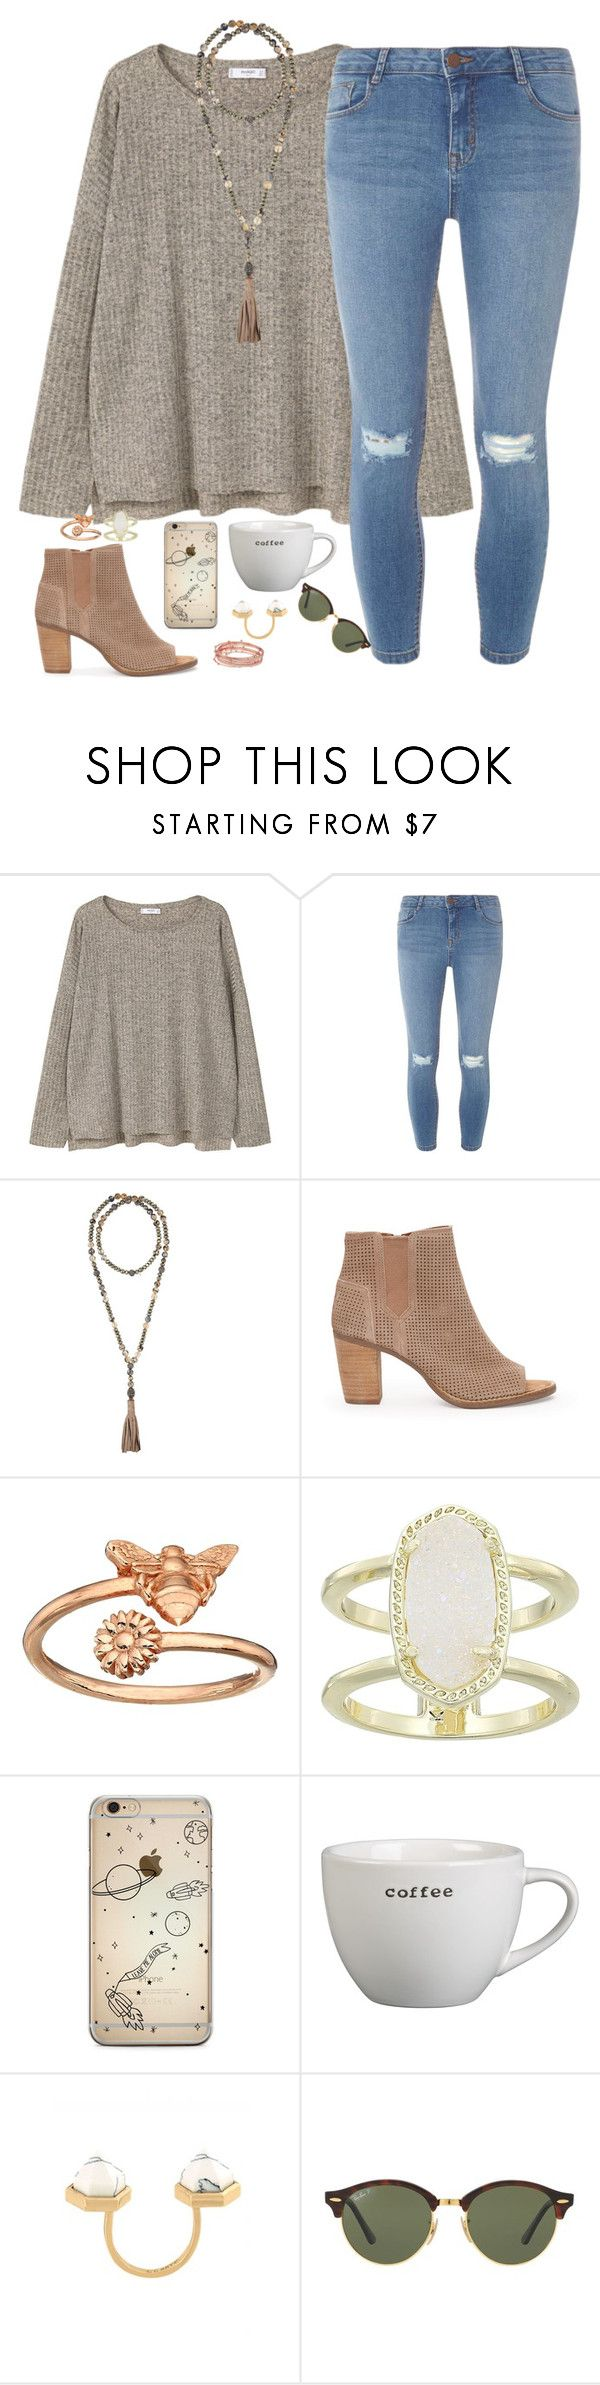 """""""maybe this time"""" by kaley-ii ❤ liked on Polyvore featuring MANGO, Dorothy Perkins, Hipchik, TOMS, Alex and Ani, Kendra Scott, Crate and Barrel, CC SKYE and Ray-Ban"""